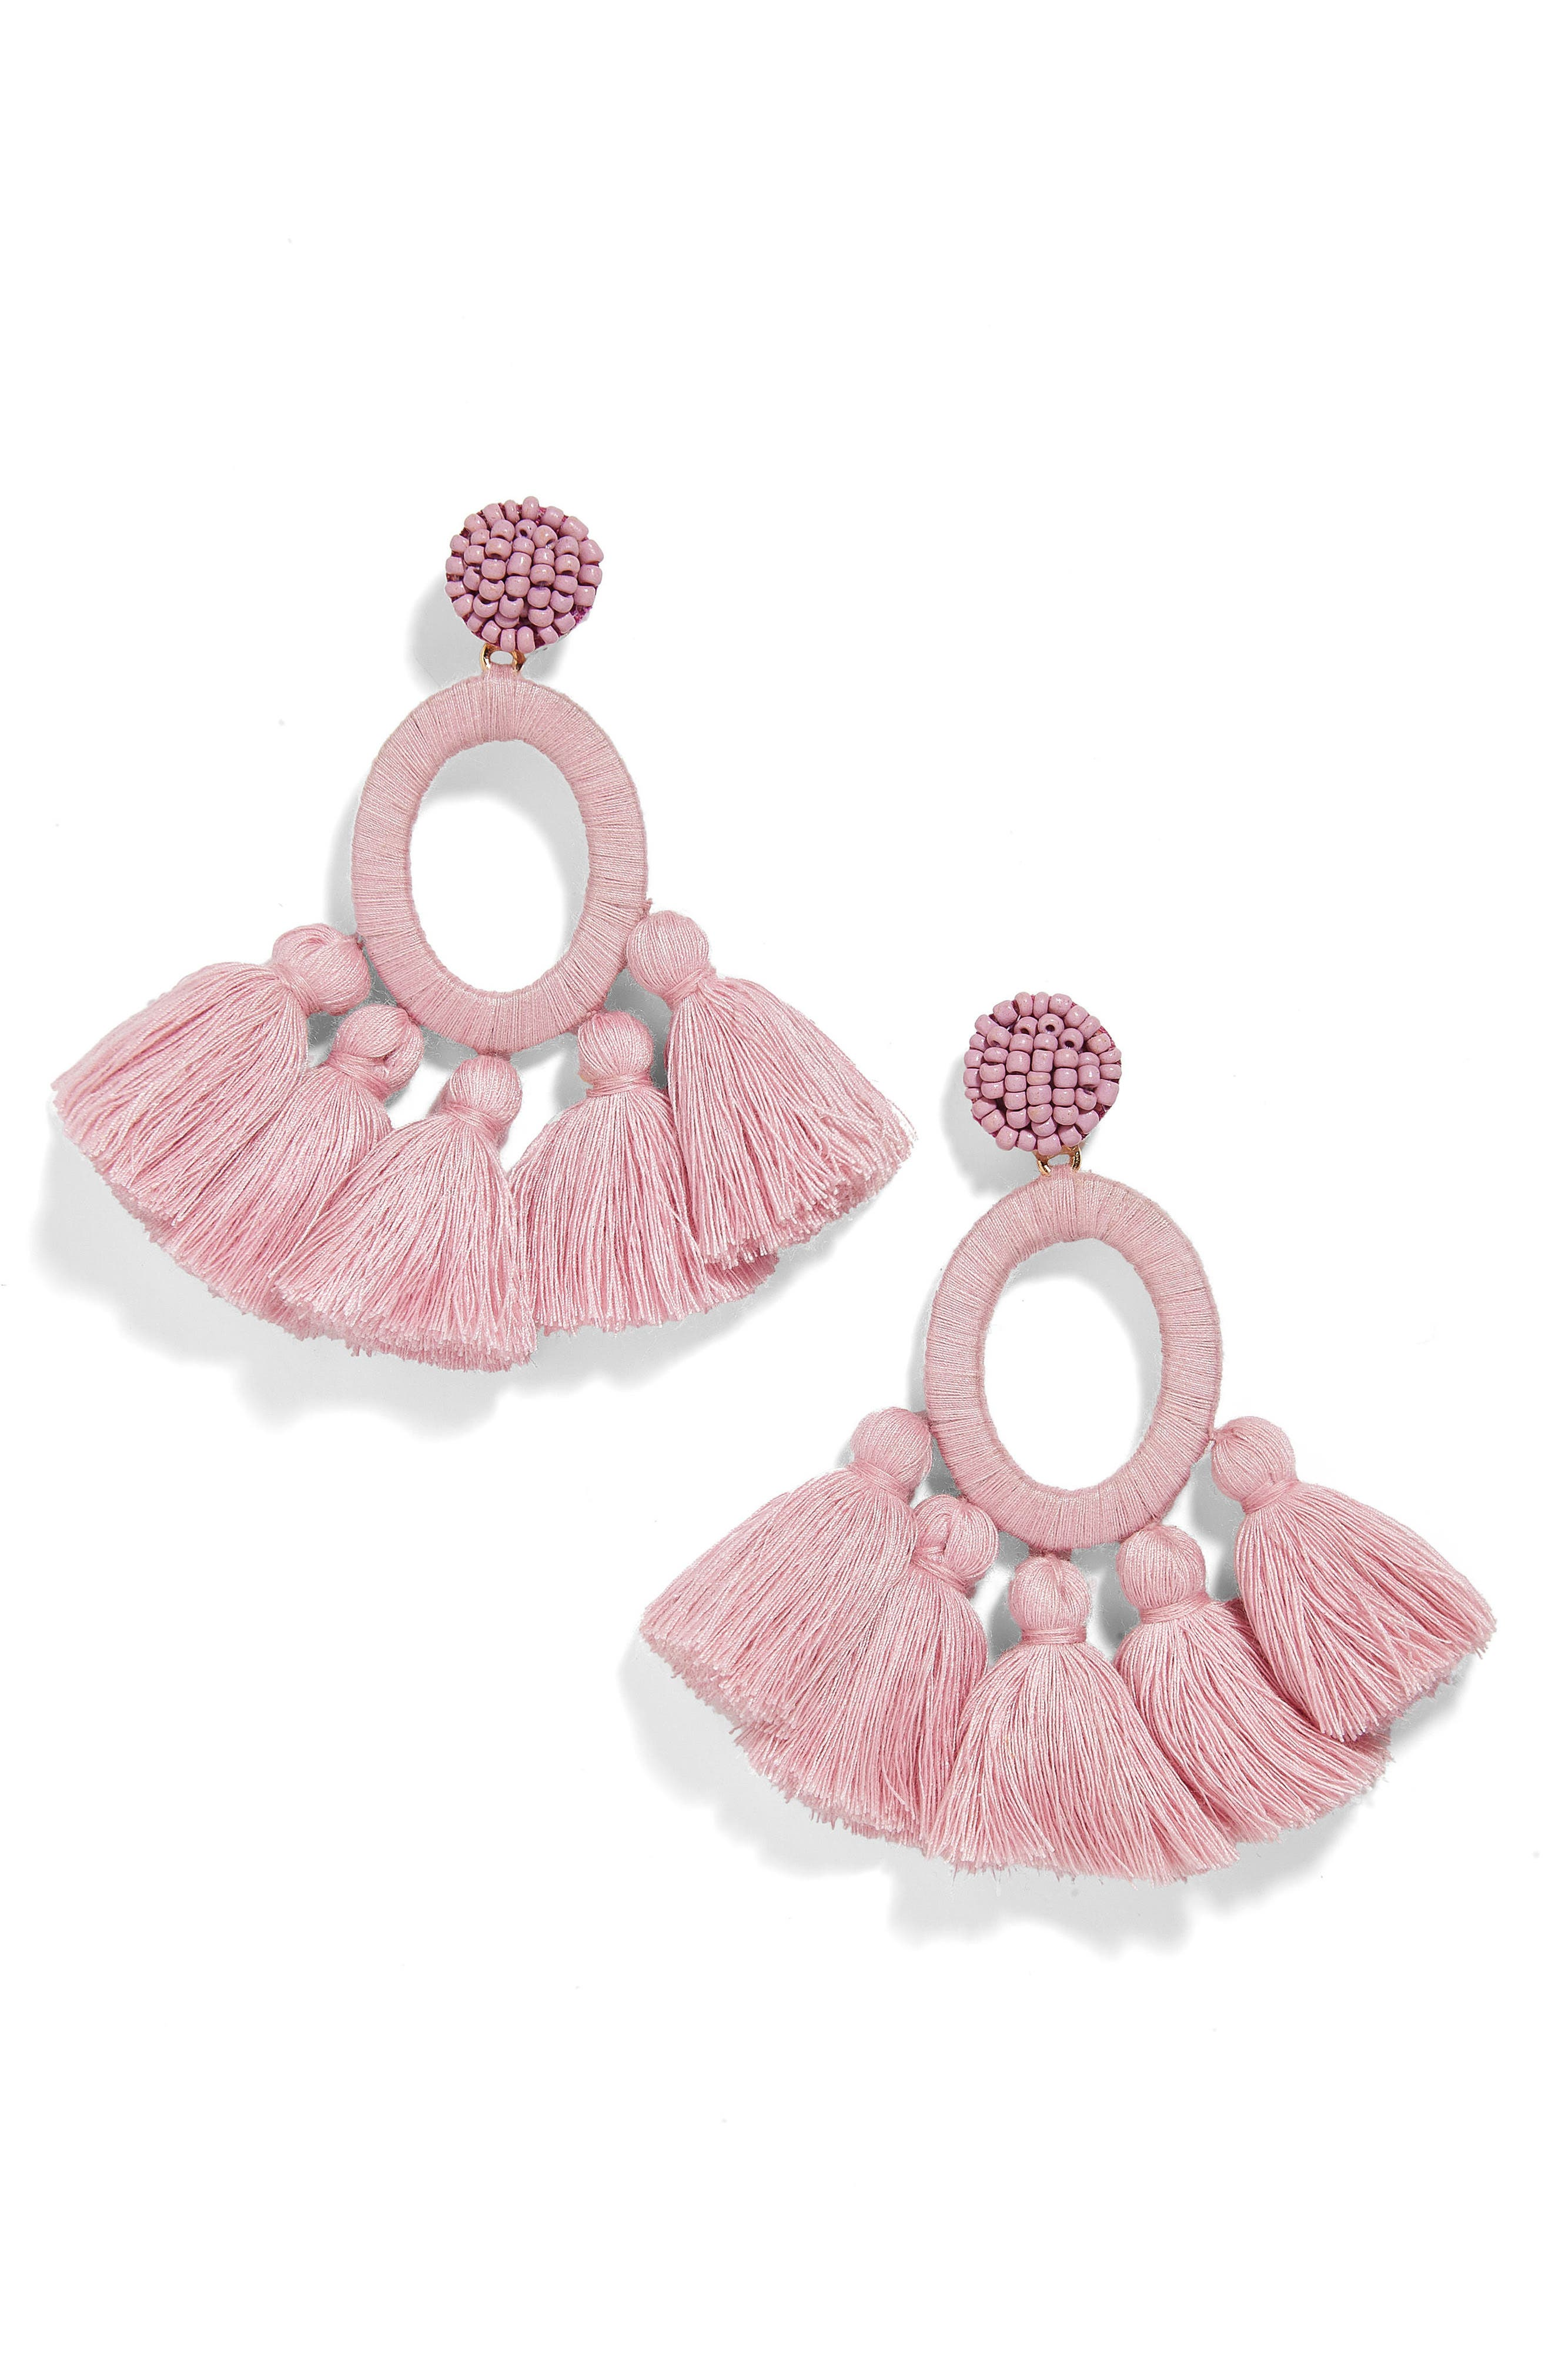 Abacos Tassel Earrings,                         Main,                         color, Blush